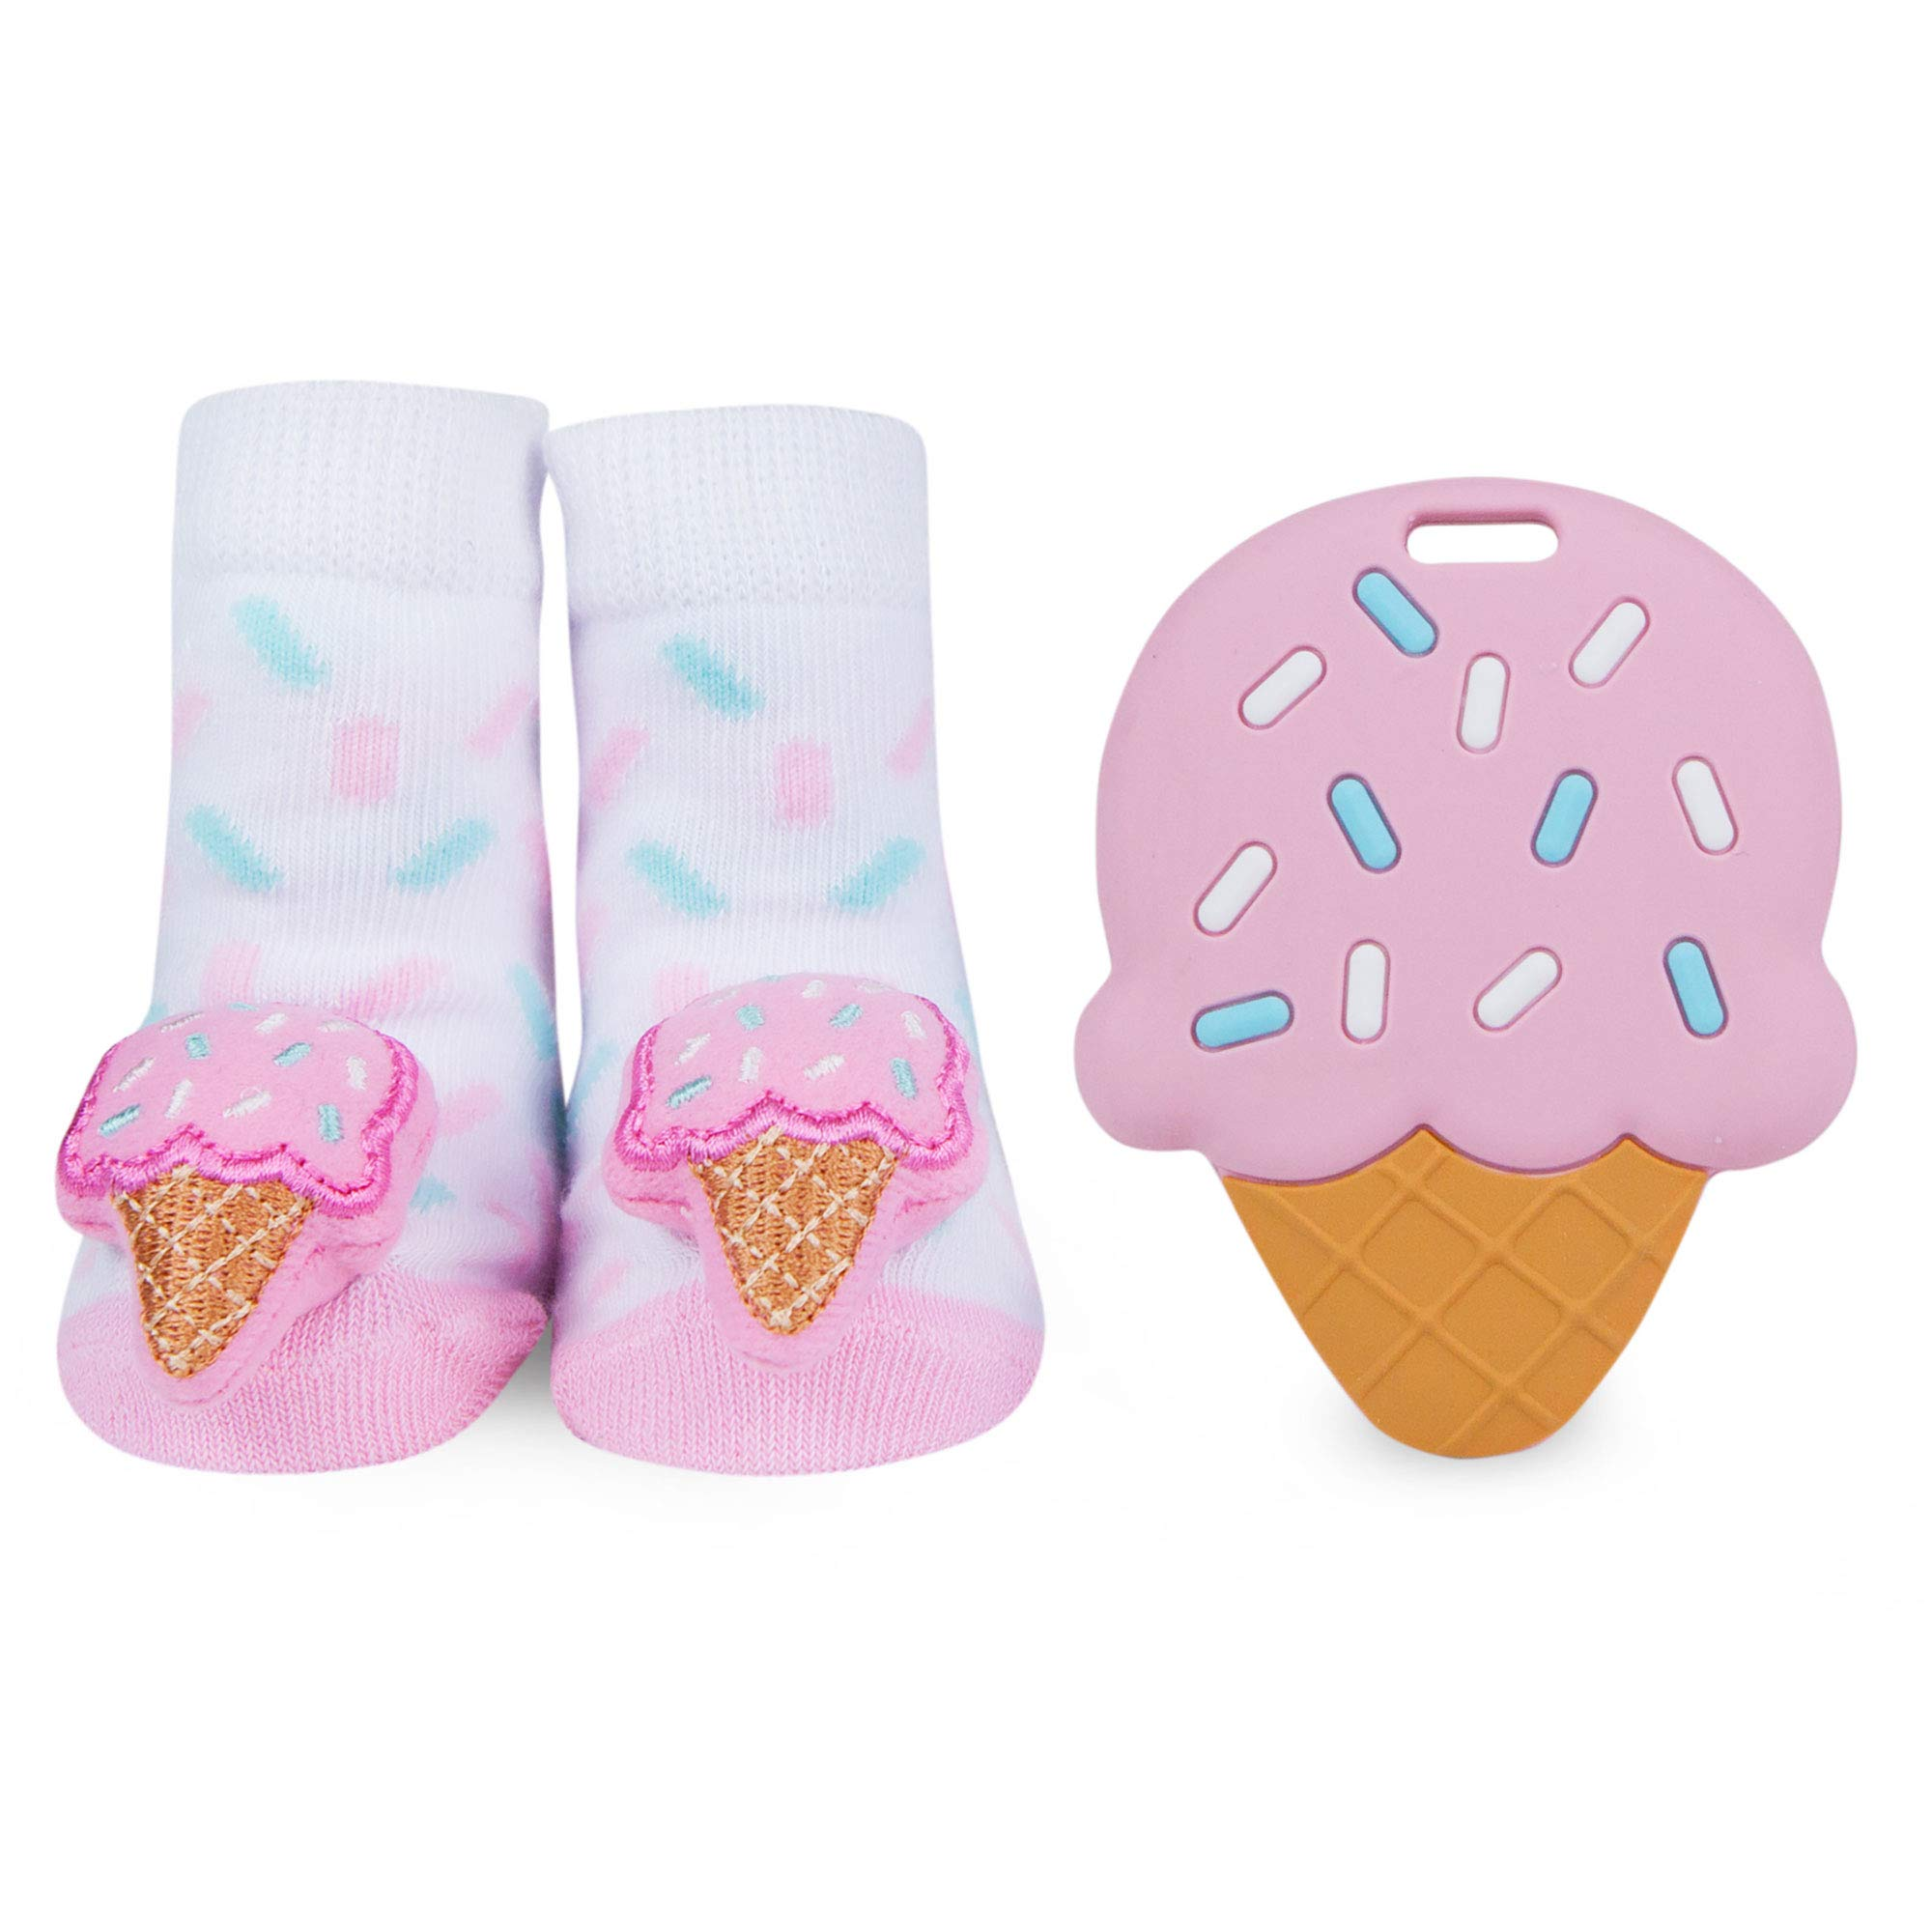 WADDLE Girls Pink Ice Cream Cone Rattle Socks and Silli Chews Baby Teether Sweet Tooth Silicone Teething Toy Infant Pain Relief Soother Newborn Gift Set